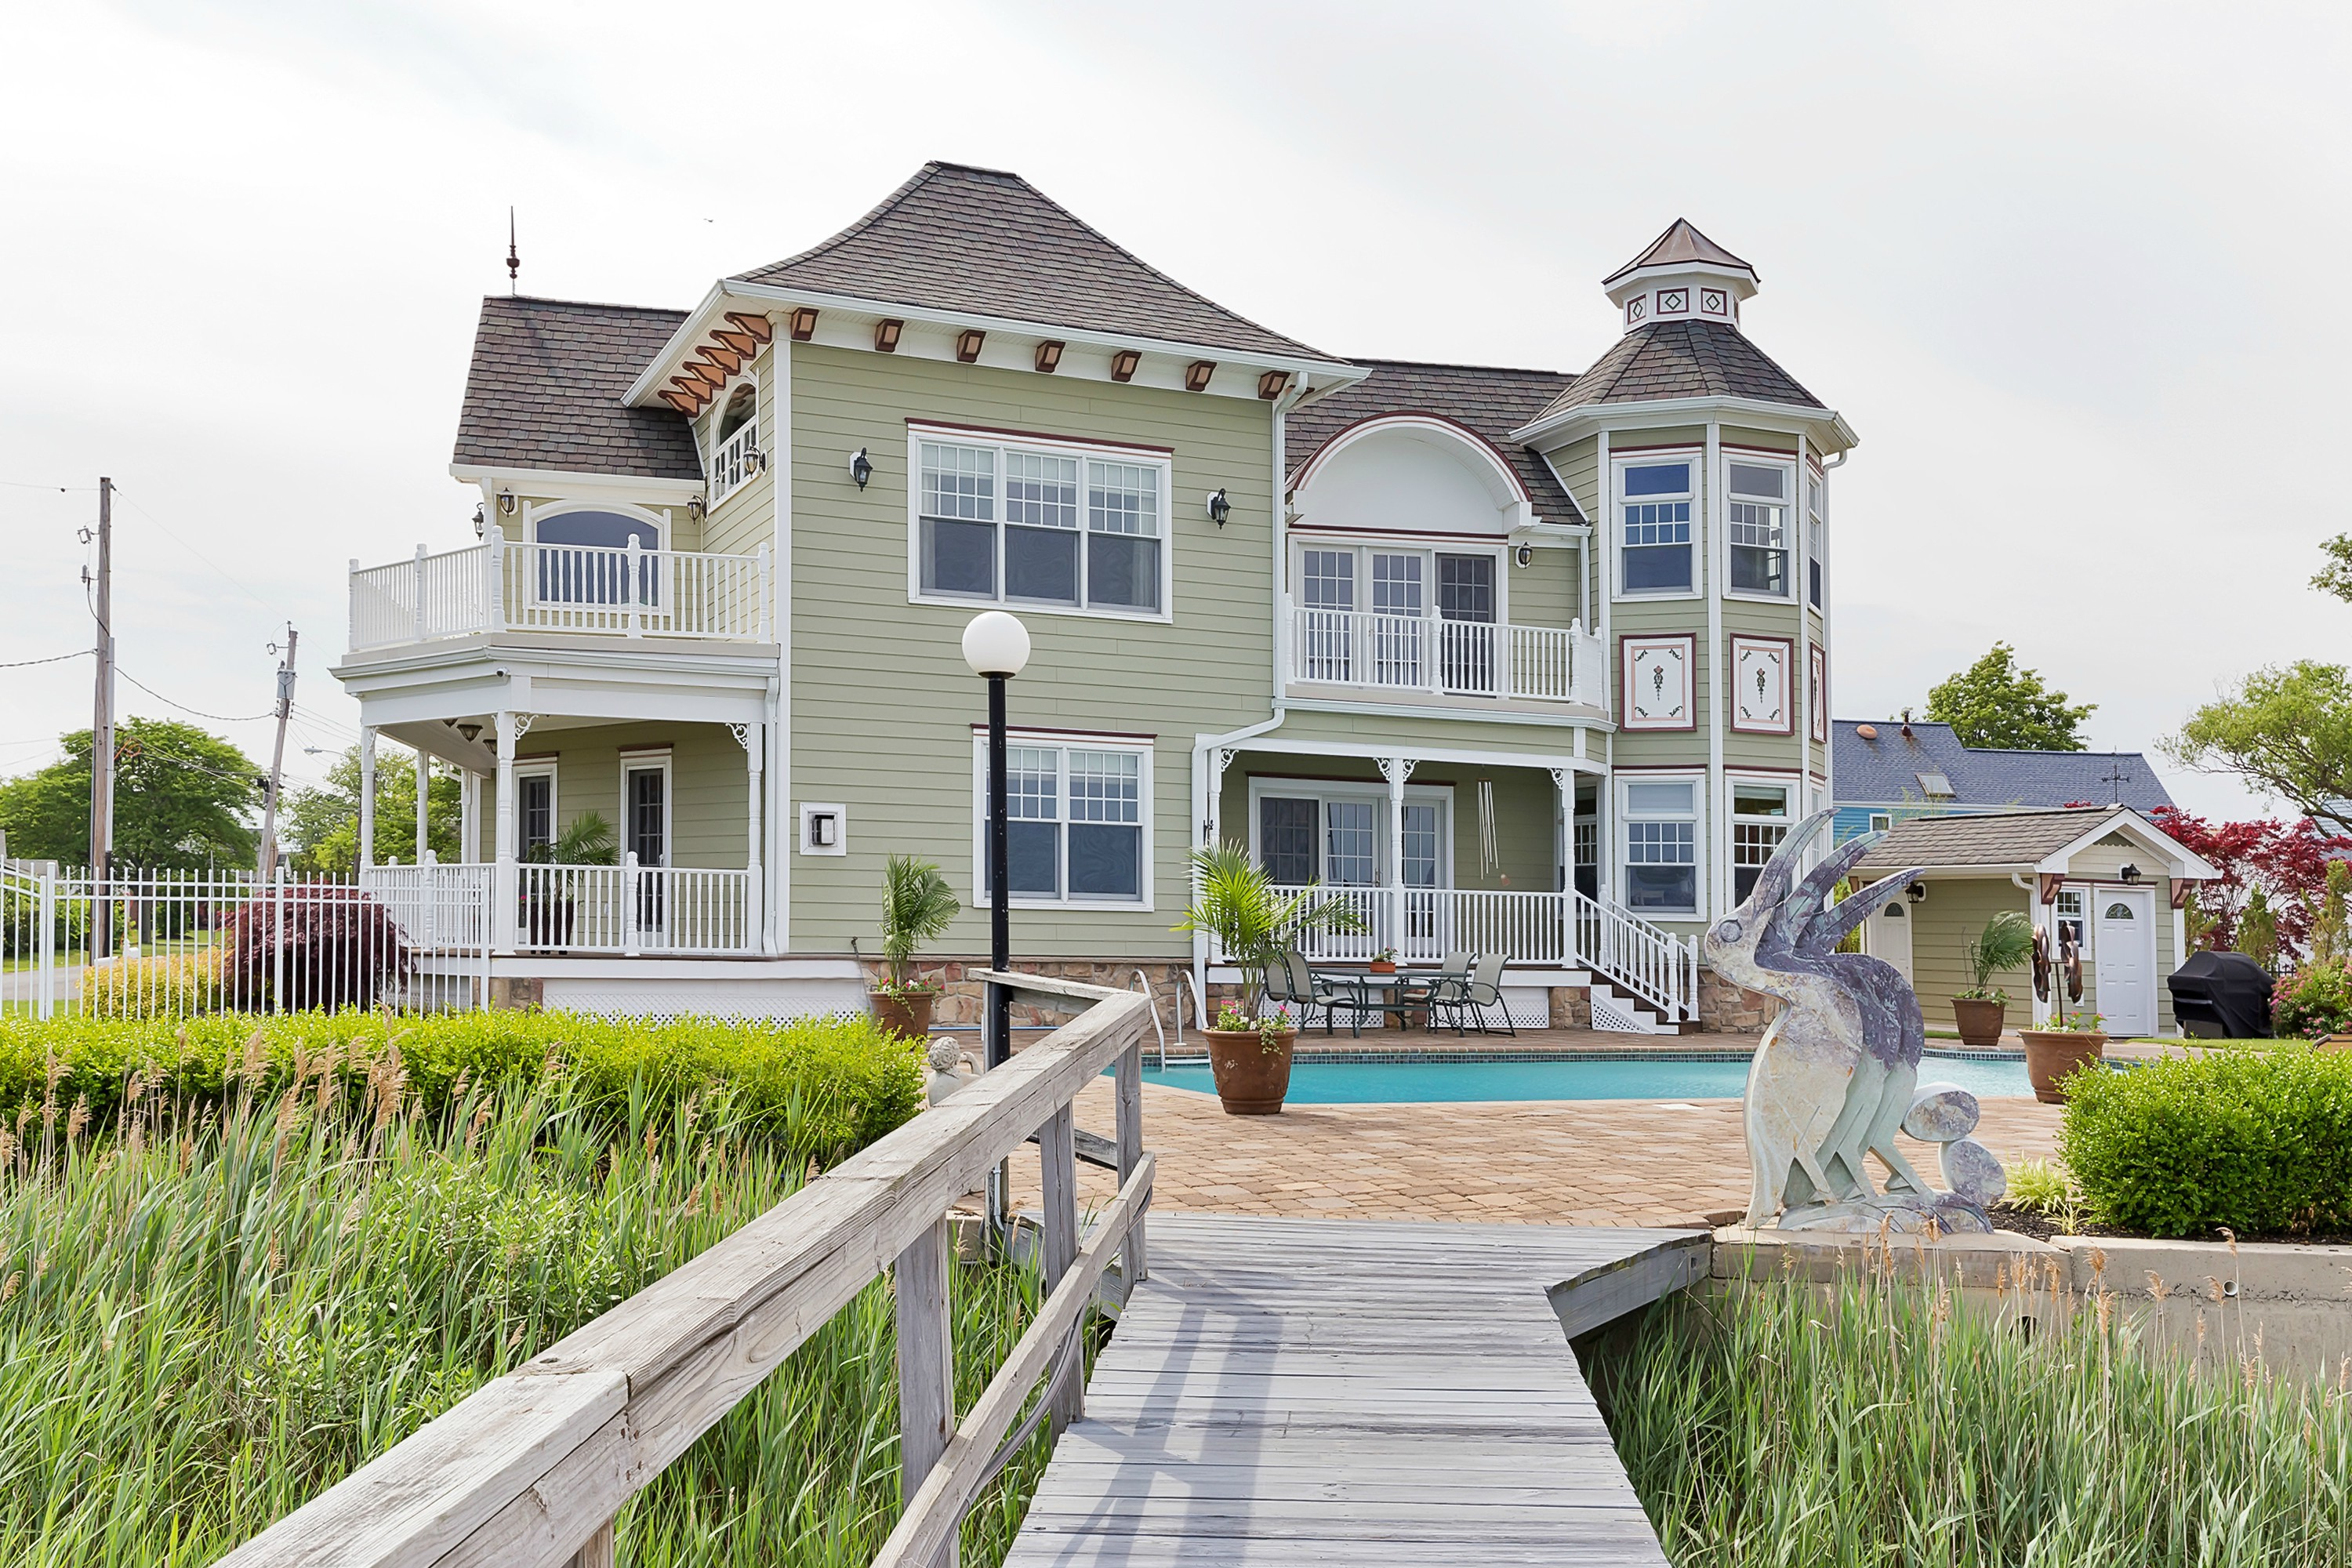 Single Family Home for Sale at Waterfront Custom Home 1 Pocano Ave. Oceanport, New Jersey 07757 United States